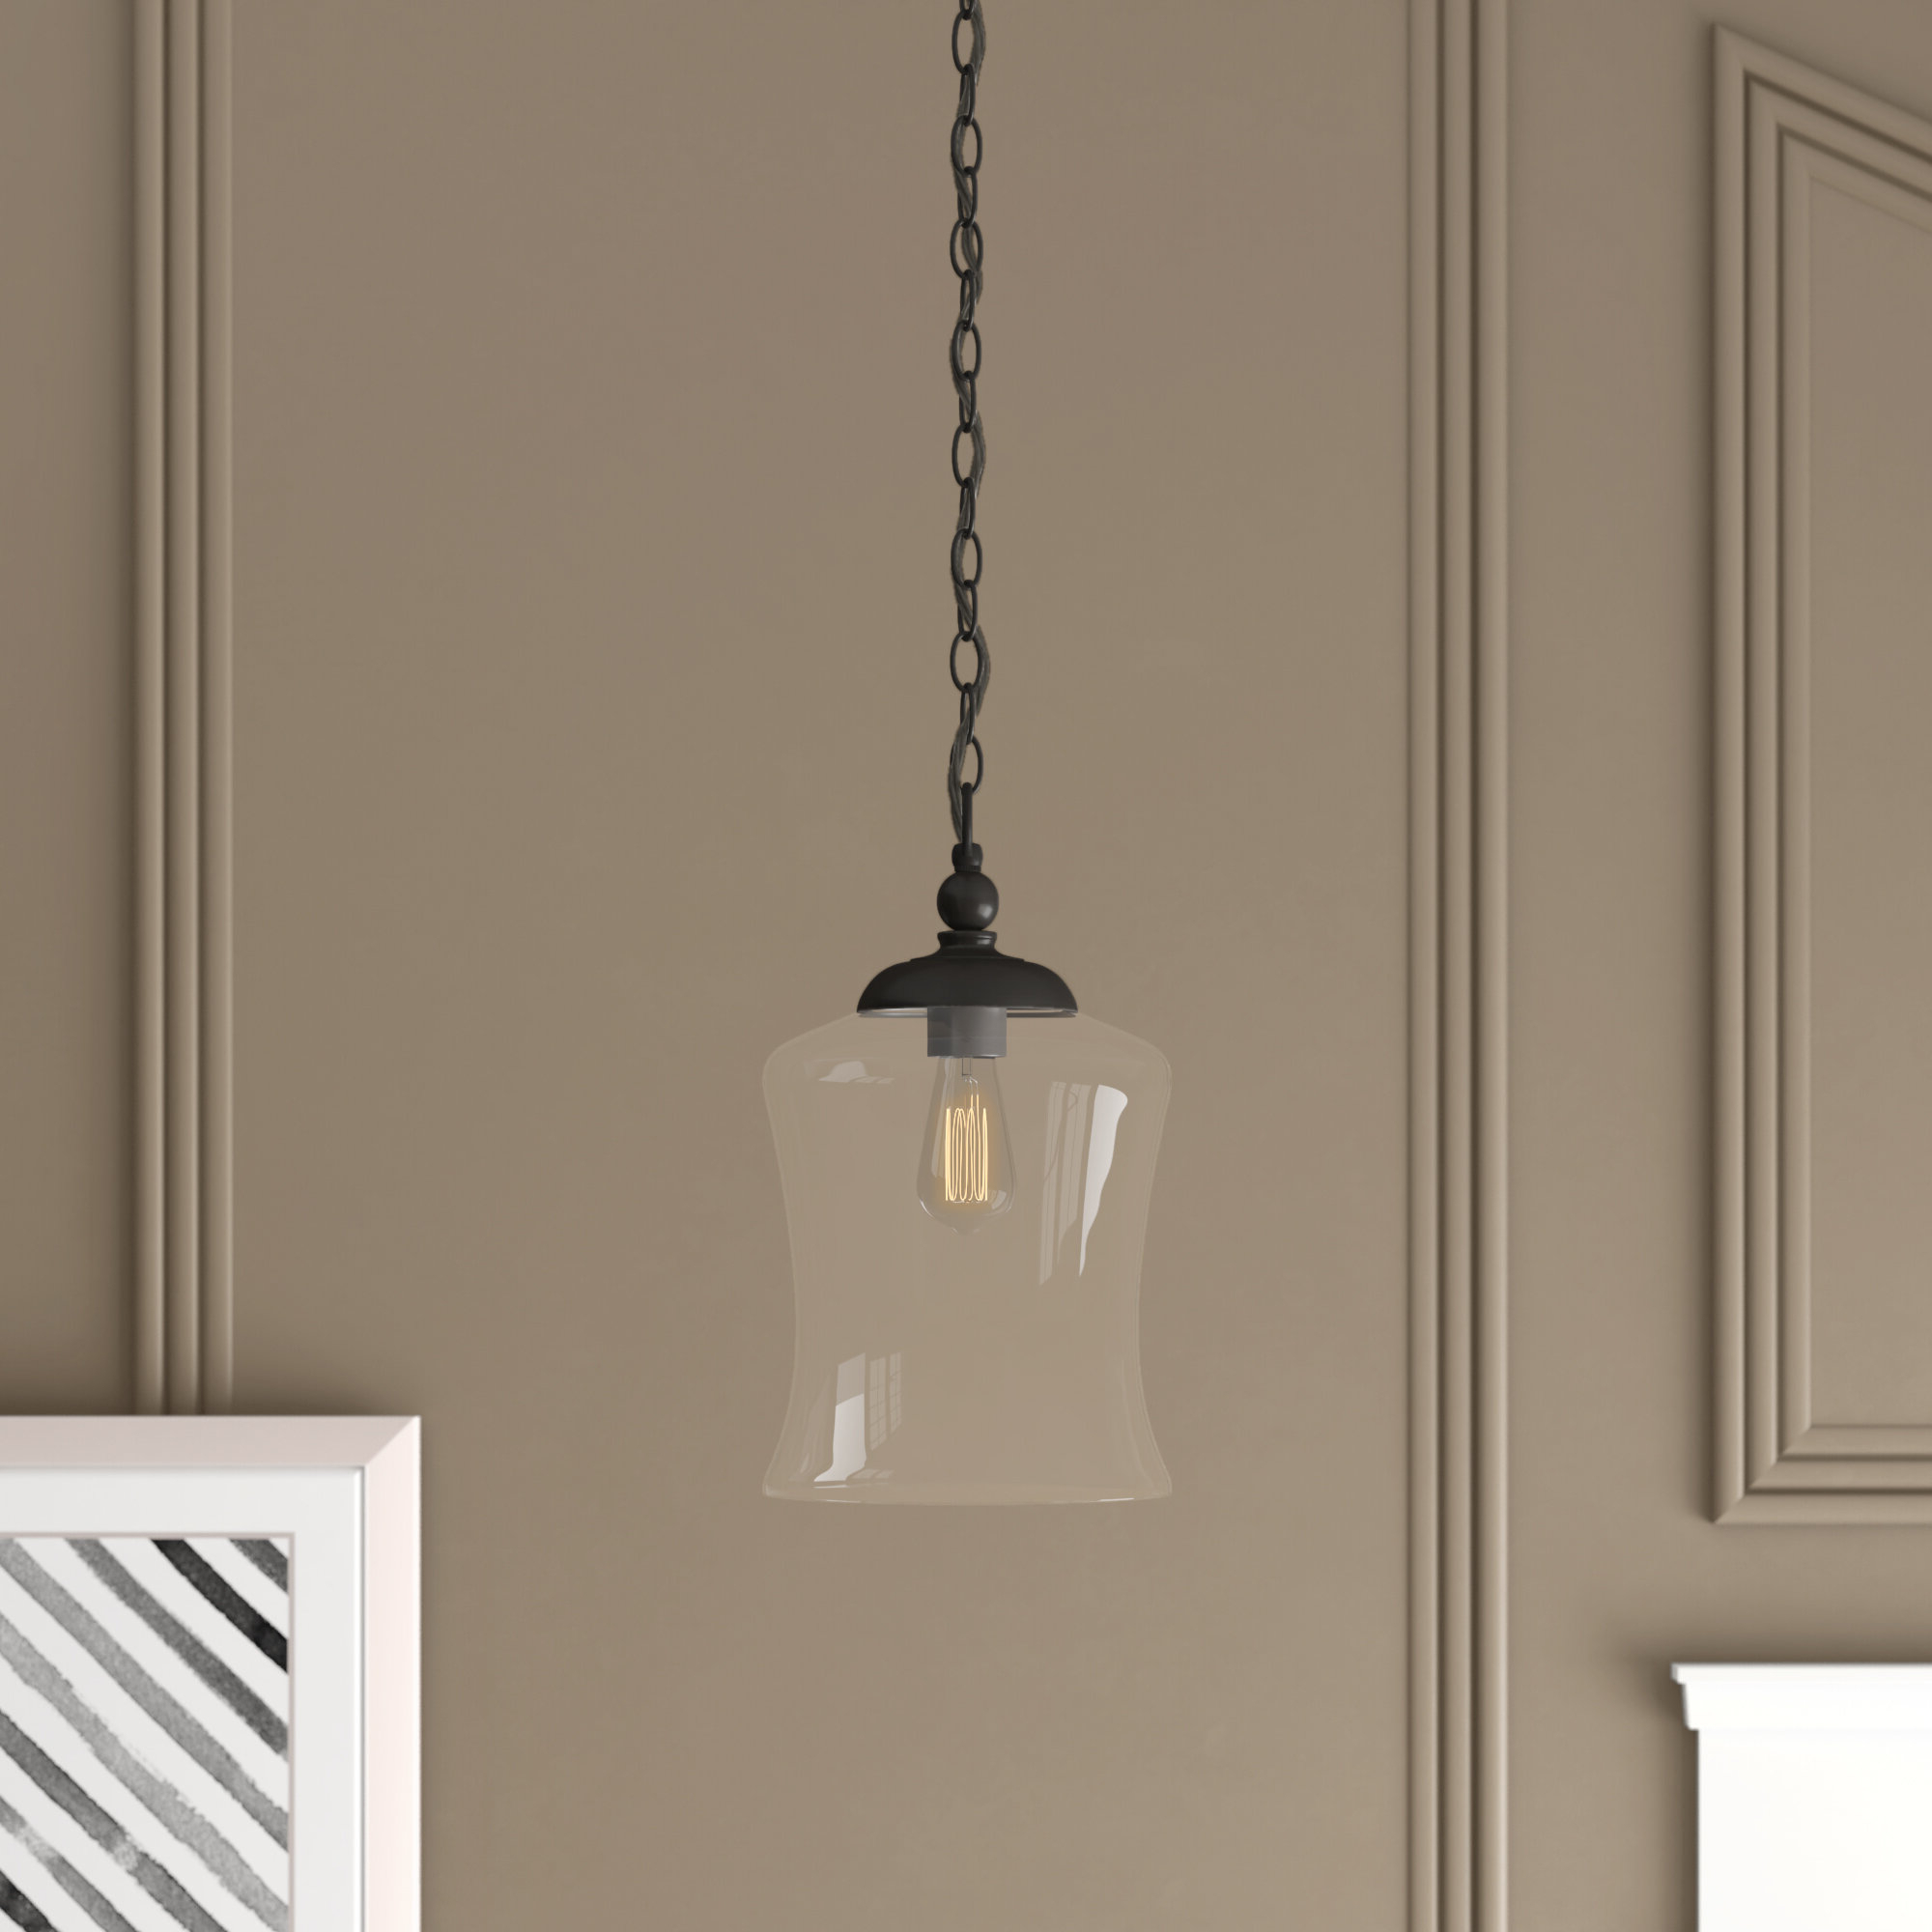 Sargent 1 Light Single Bell Pendants For Most Popular Wentzville 1 Light Single Bell Pendant (View 18 of 25)